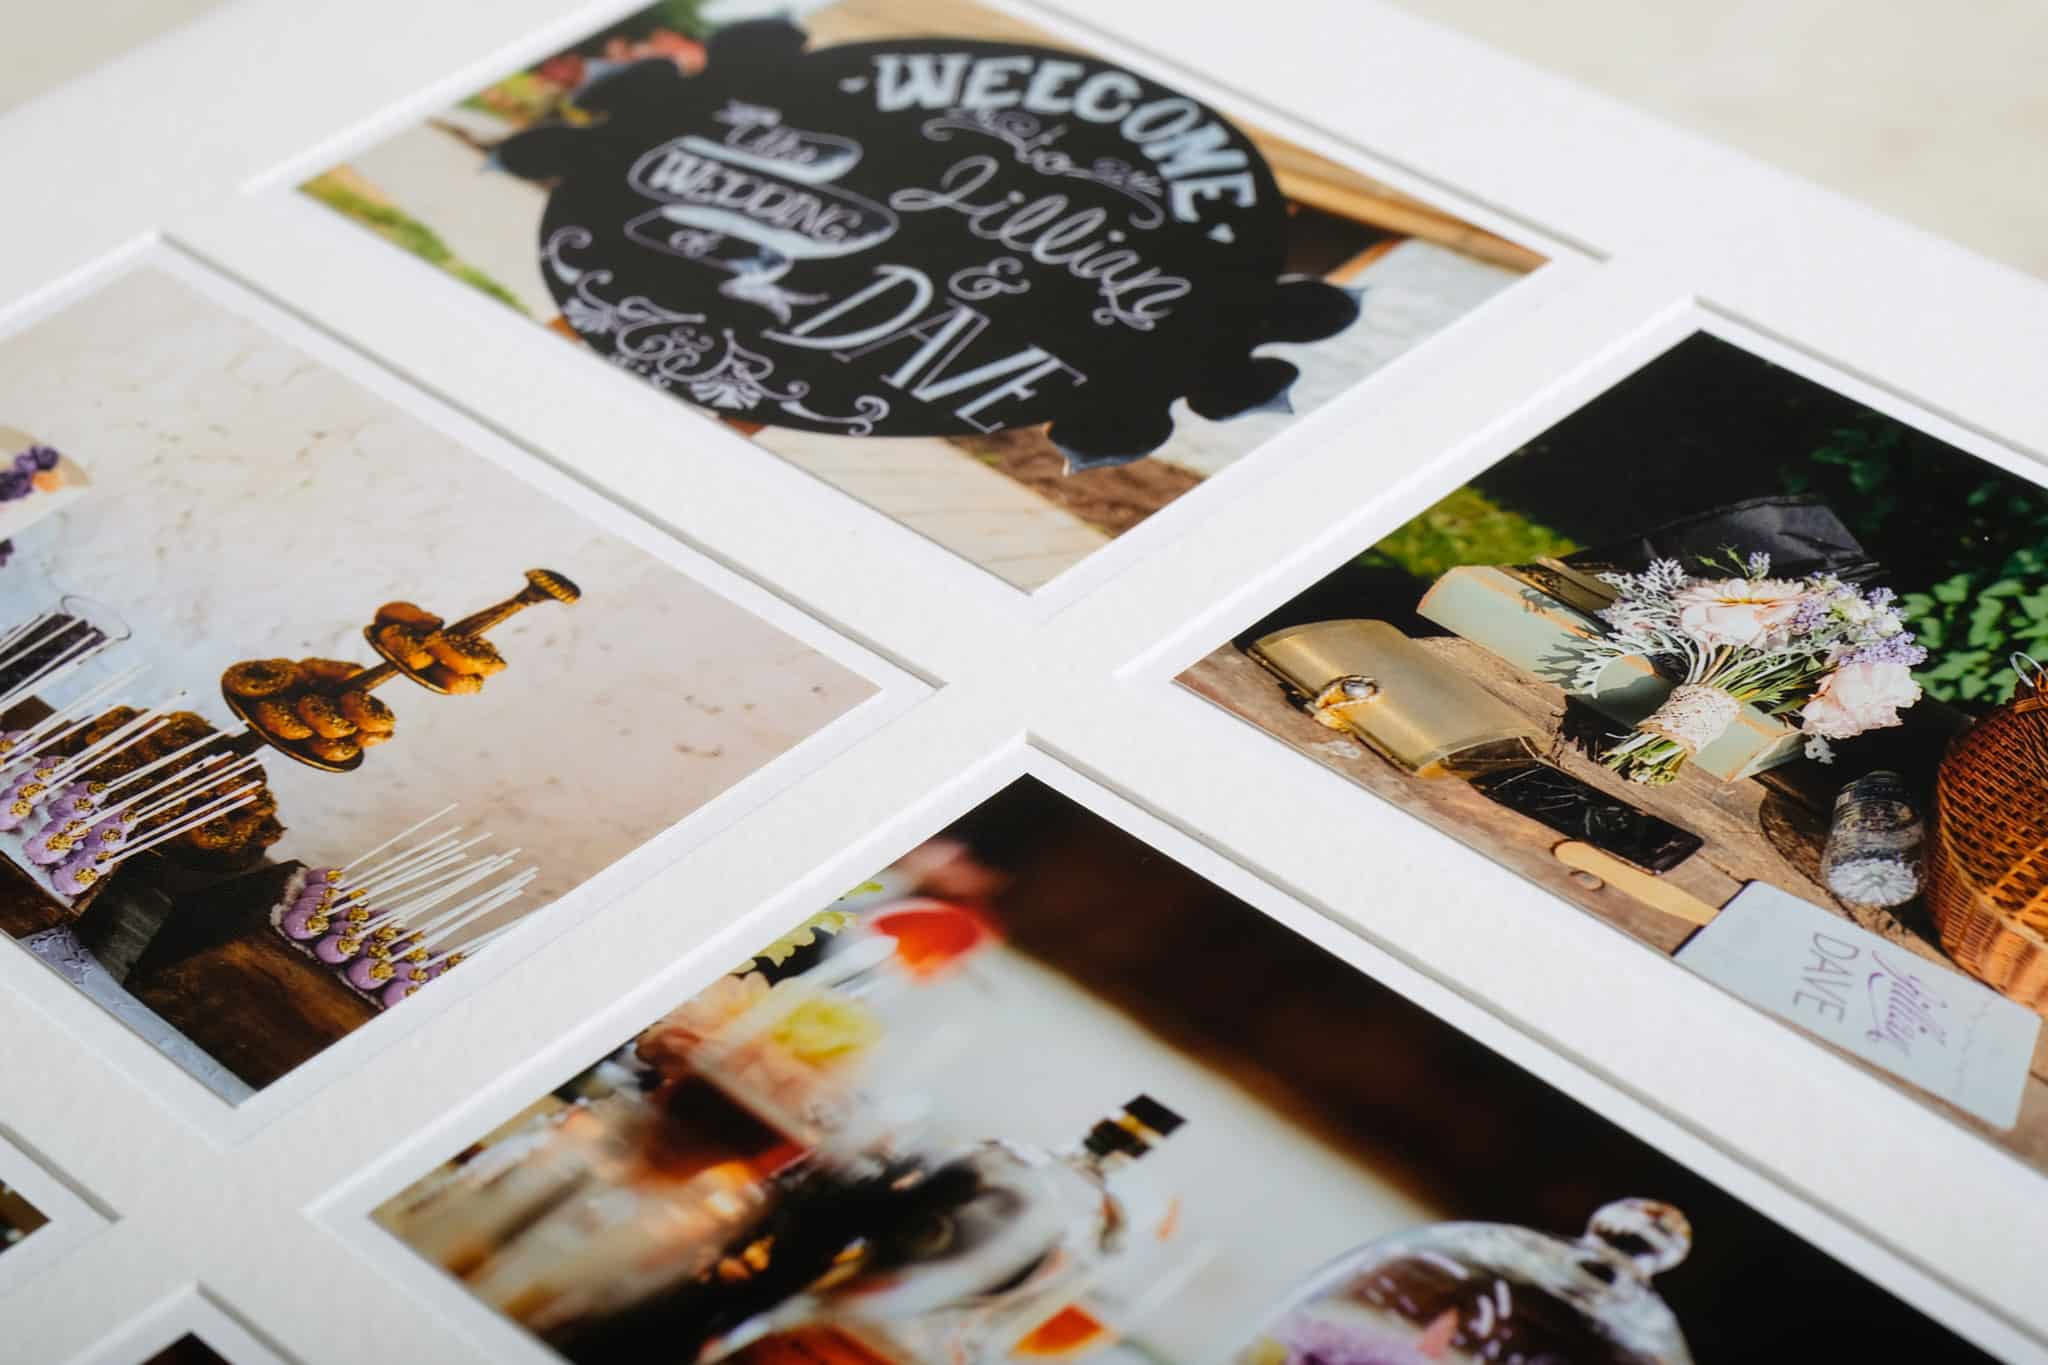 Detail of the precision involved in creating pagemount style wedding photo albums.